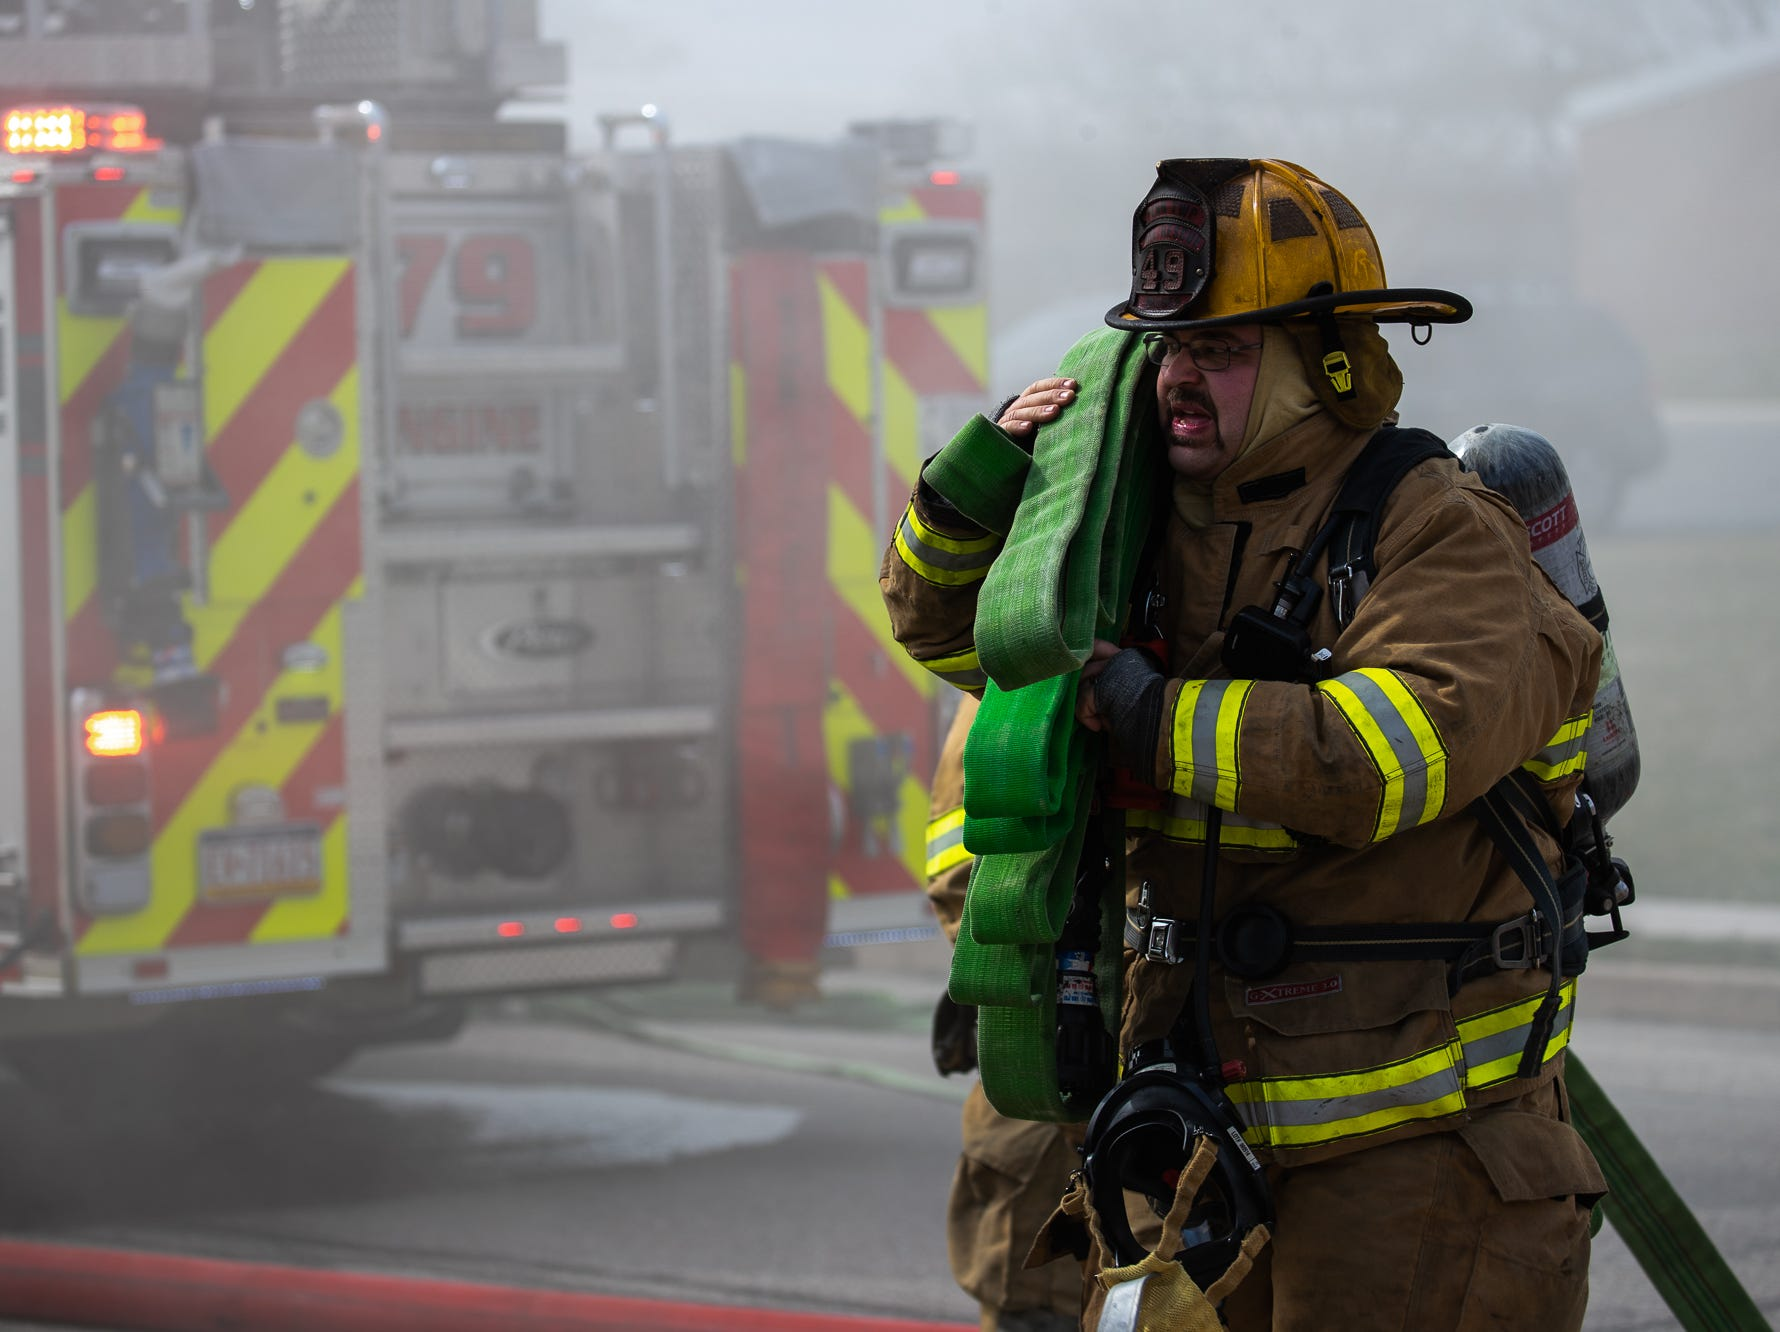 Firefighter Jerry Misner pulls a second hoseline at the scene of a house fire on the 100 block of Mumma Ave., Saturday, March 30, 2019, in Penn Township. No one was injured in the fire, which appears to have been an accidental fire in the kitchen, said Hanover Area Fire & Rescue Chief Tony Clousher.